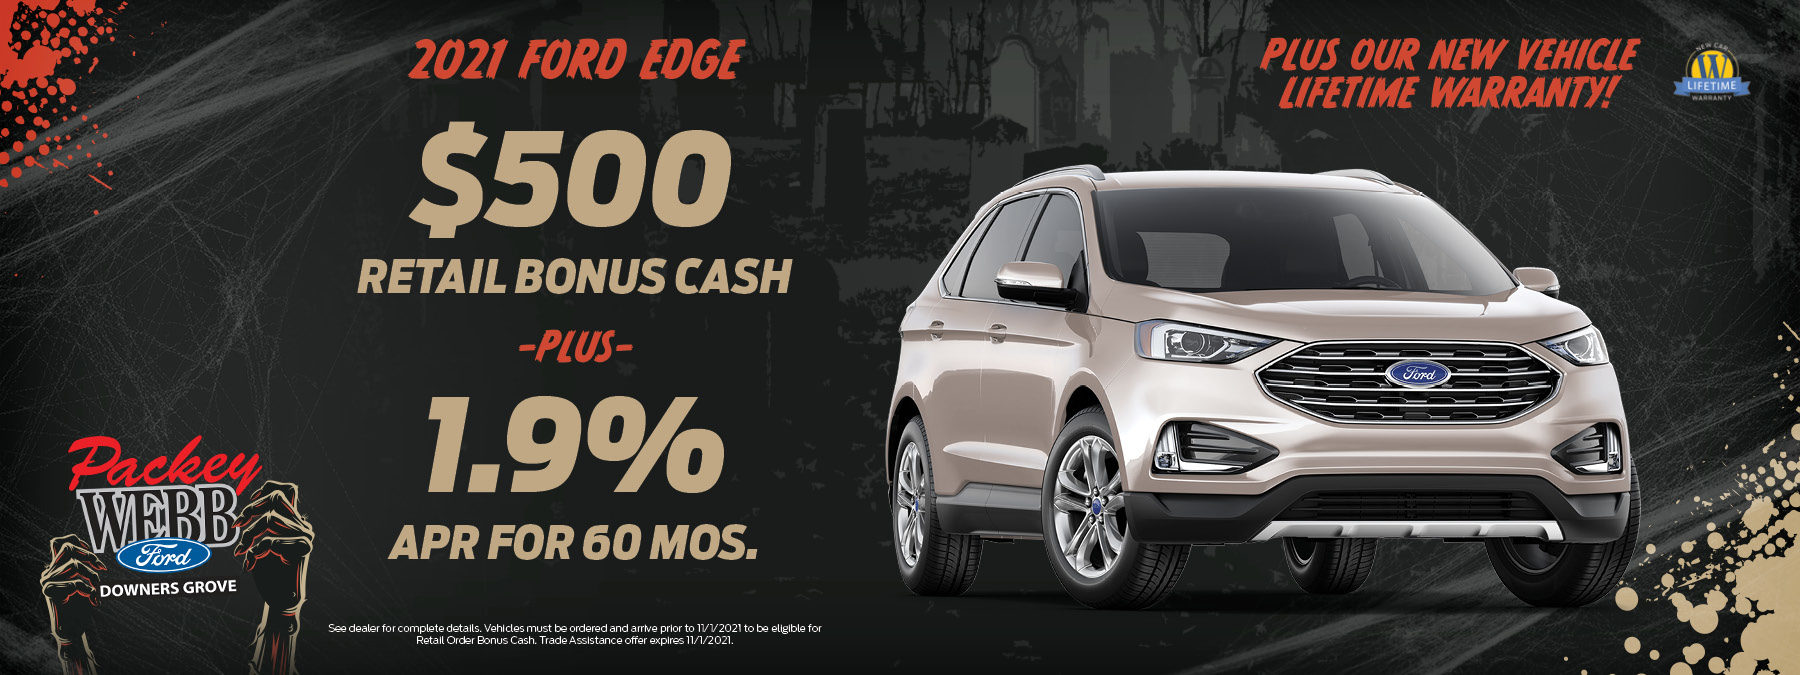 2021 Ford Edge   Packey Webb Ford   Downers Grove, IL